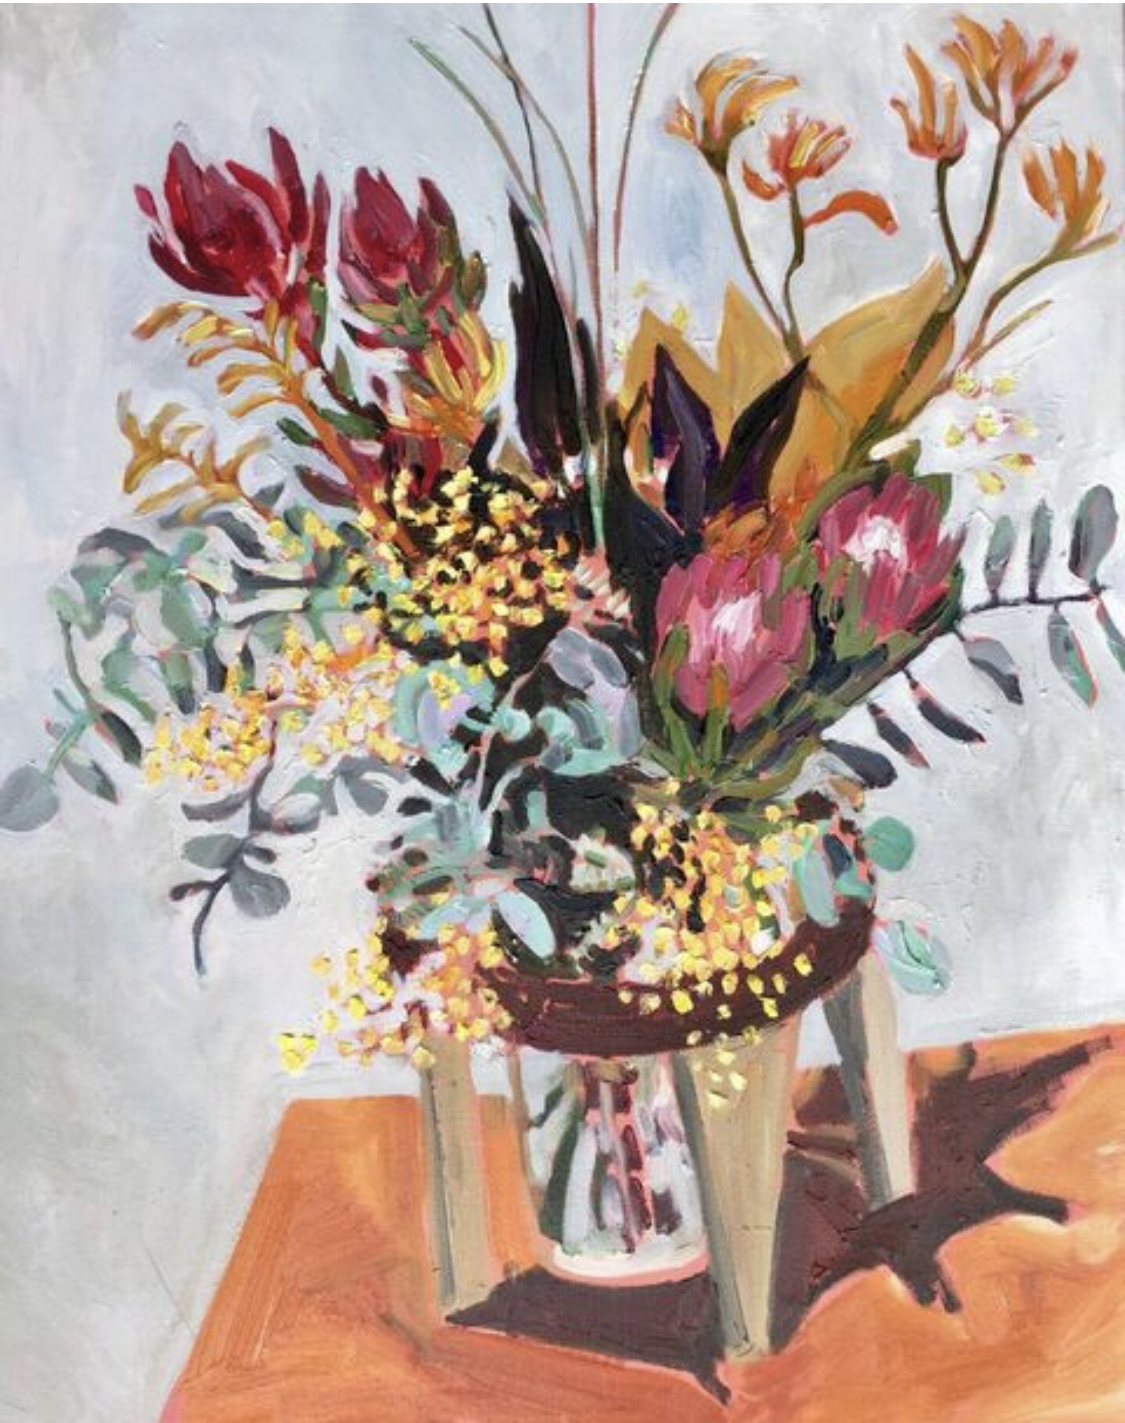 Thea's Flowers